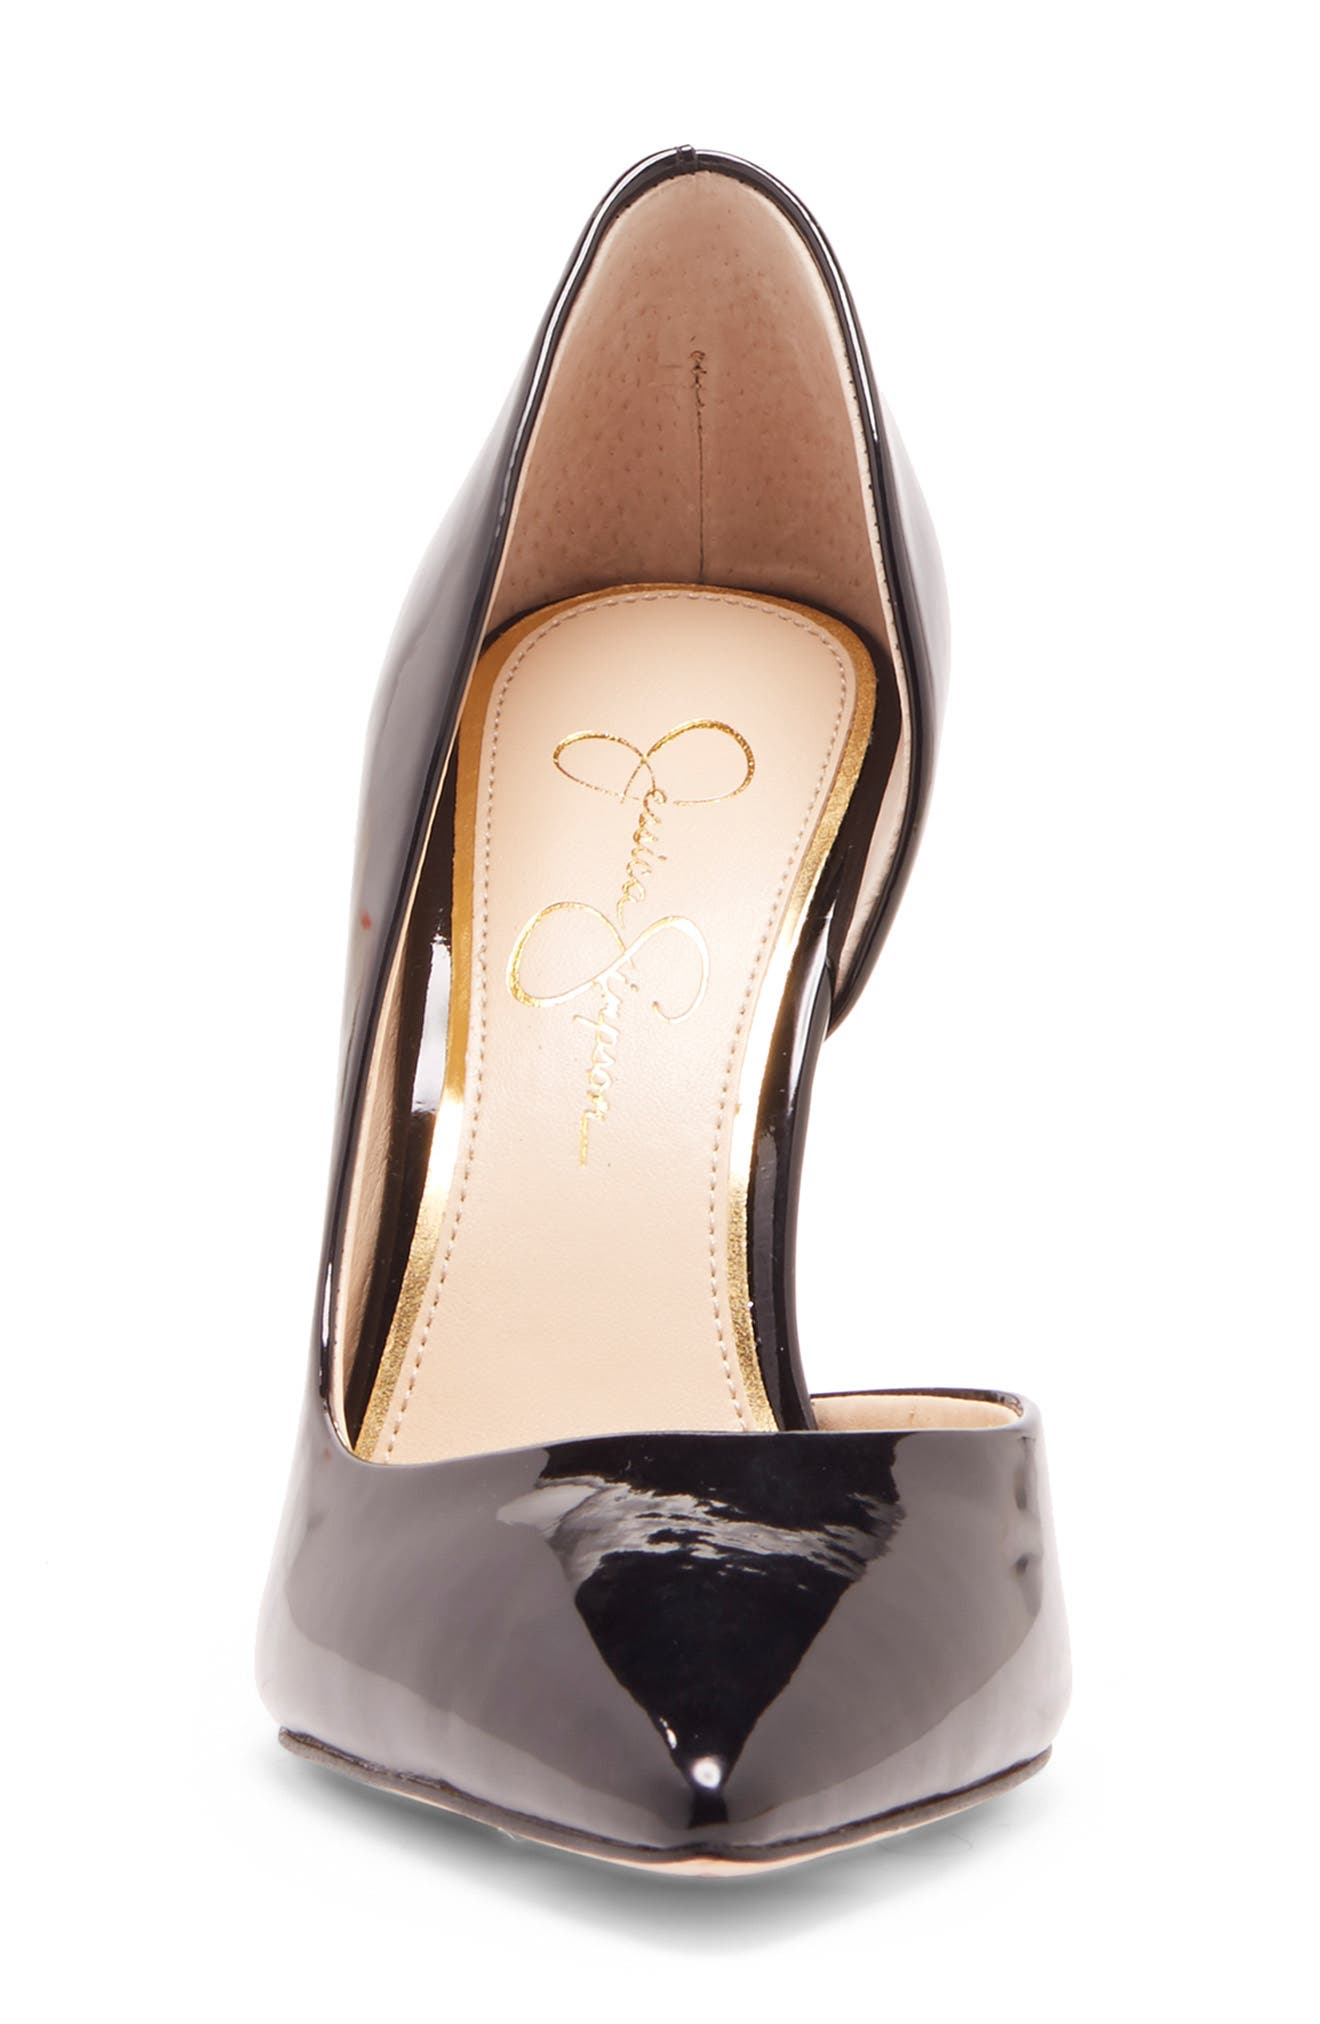 JESSICA SIMPSON, Prizma Half-d'Orsay Pump, Alternate thumbnail 4, color, BLACK